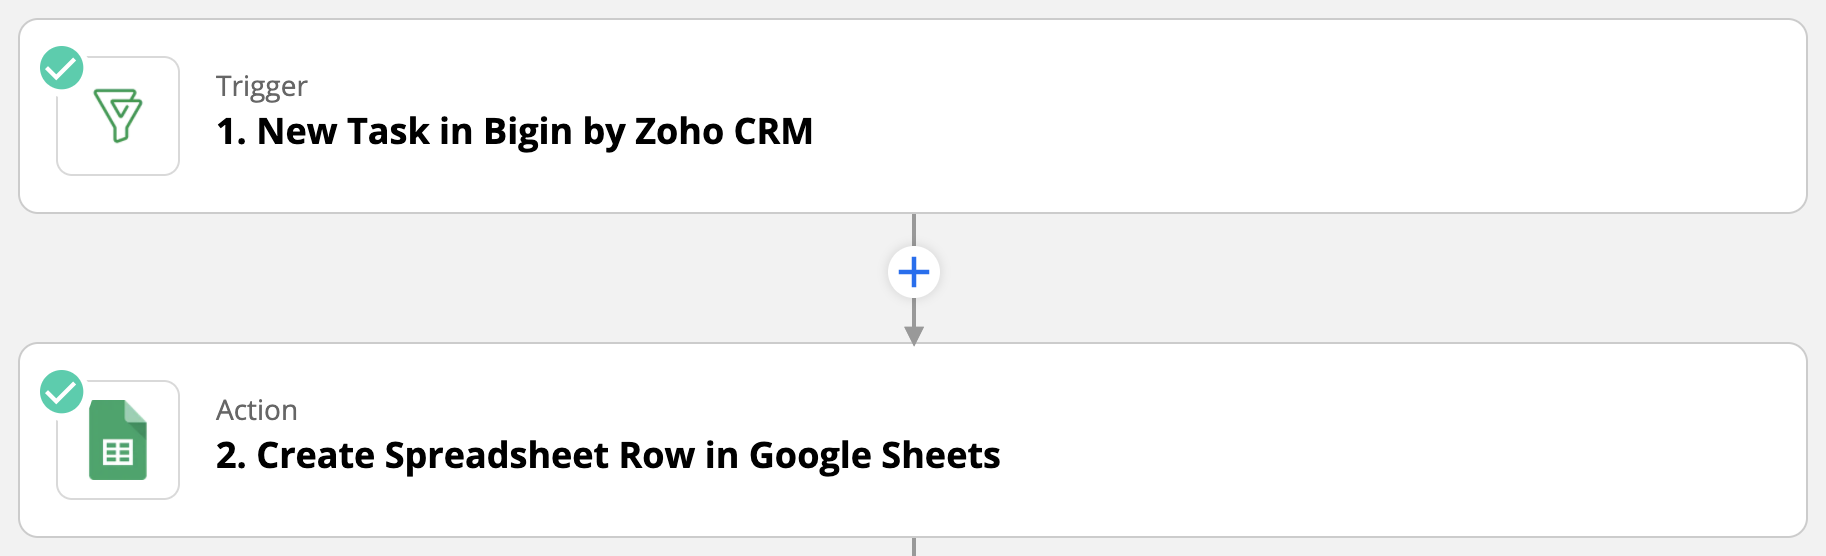 Bigin and Google Sheets integration through Zapier